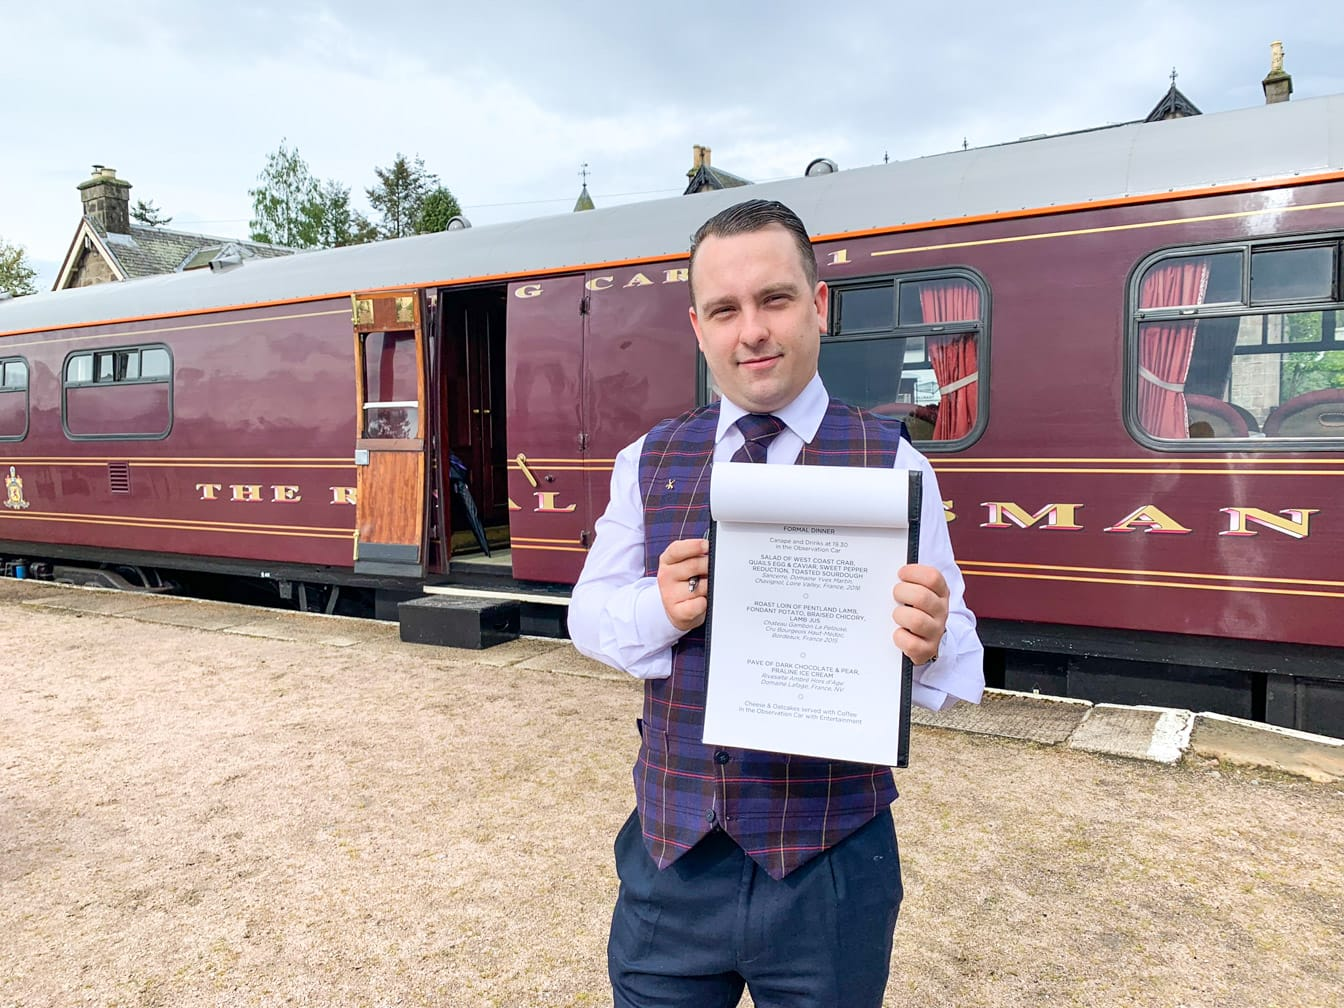 staff holding a sign on the Belmond Royal Scotsman train